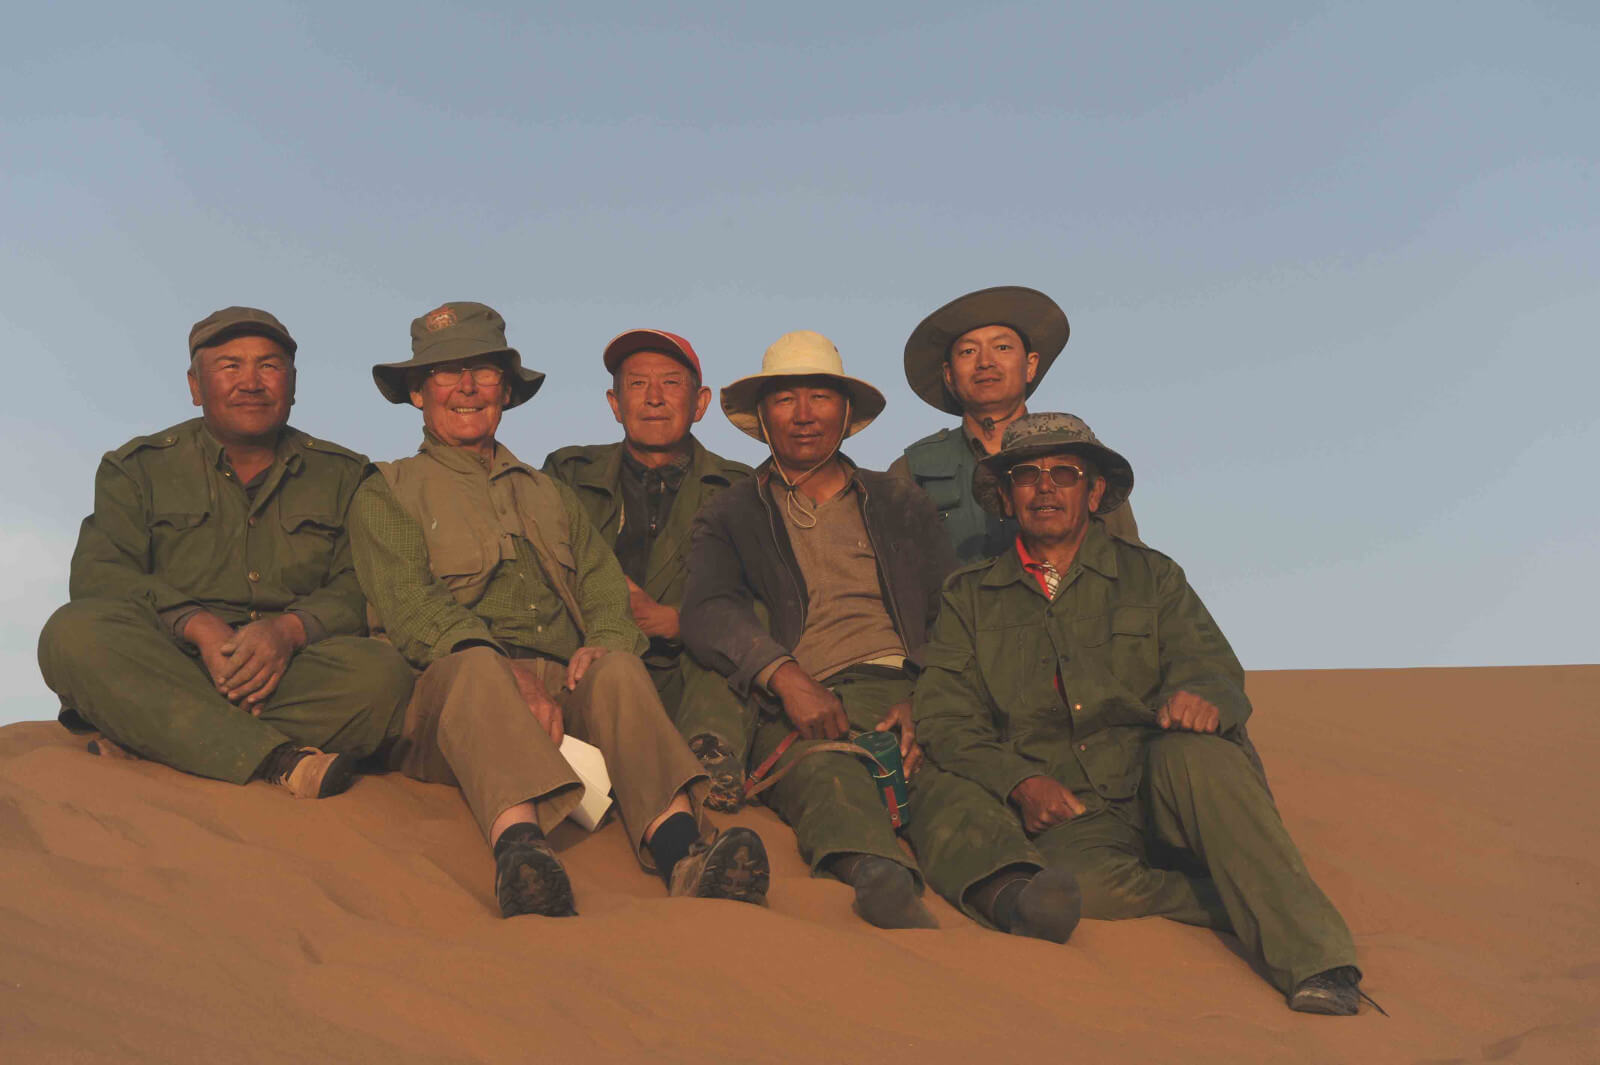 2011 Expedition team, John Hare, Dr Yuan Lei and Kazakh herdsmen